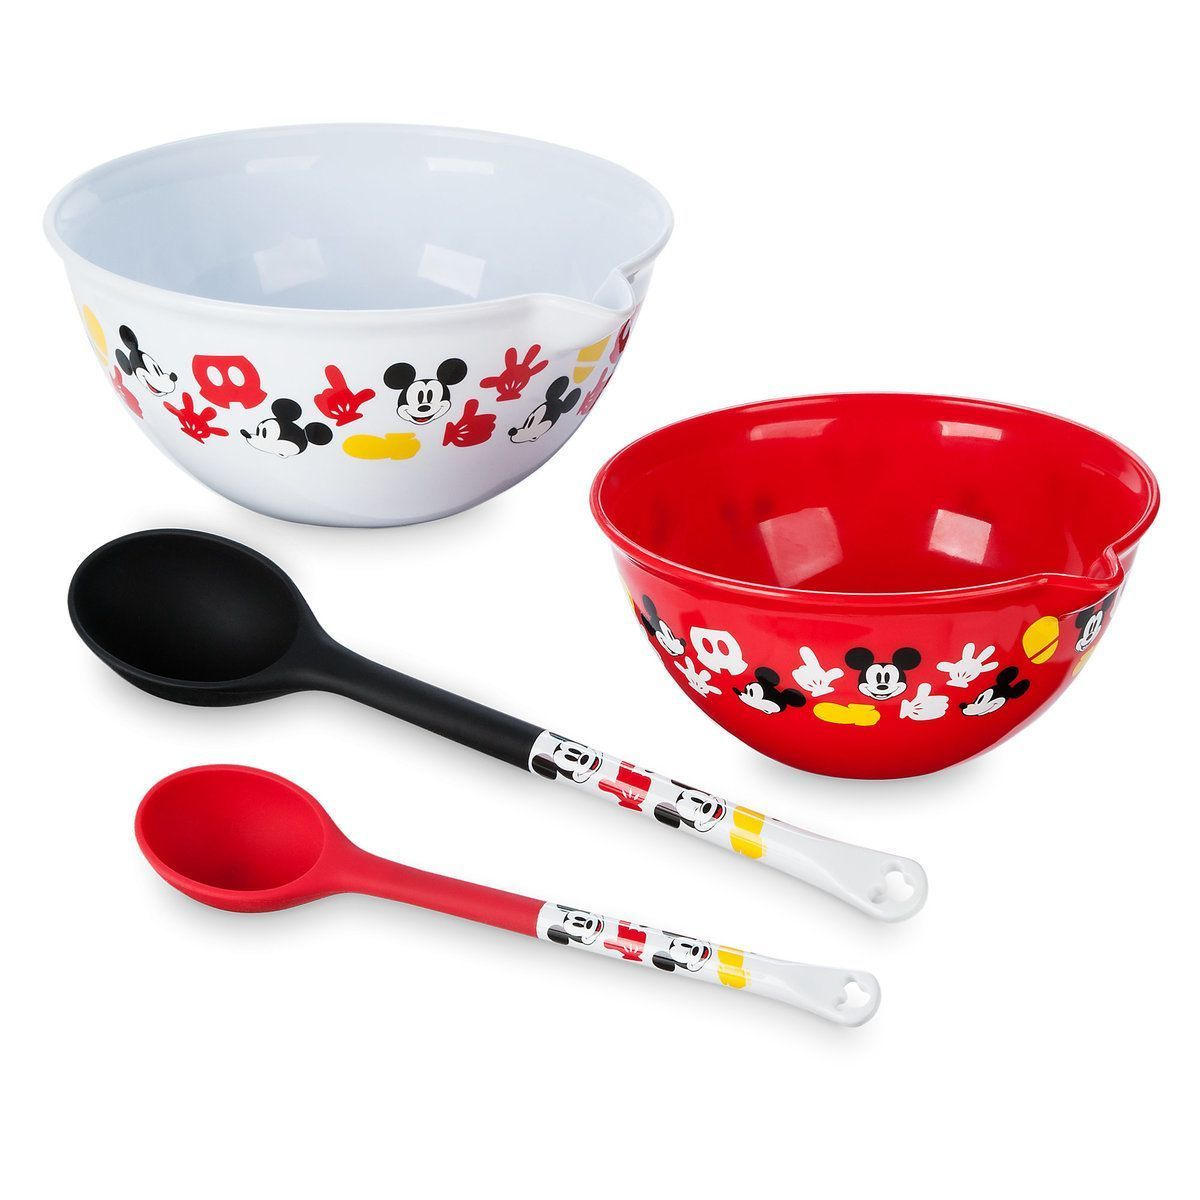 Product Image of Mickey Mouse Bowl and Spoon Set - Disney Eats # 2 #disneykitchen